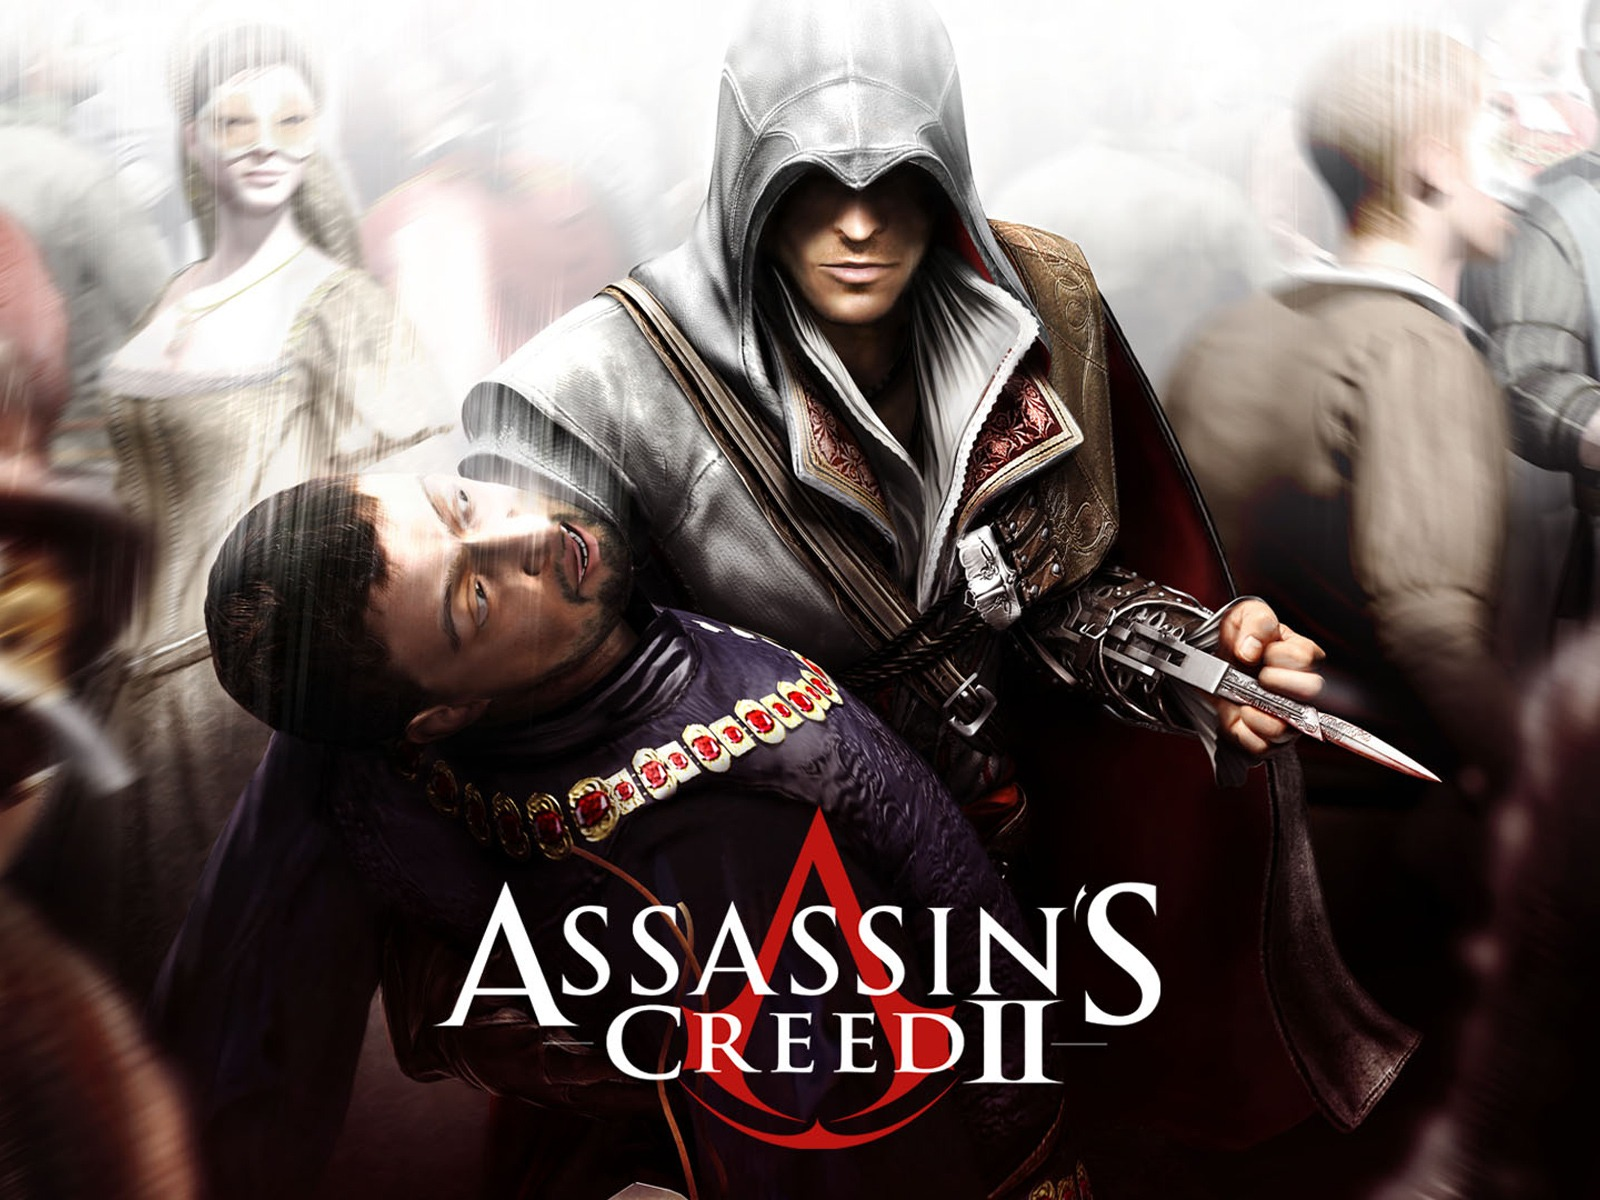 Assassin S Creed 2 Wallpaper Assasins Creed Games Wallpapers In Jpg Format For Free Download